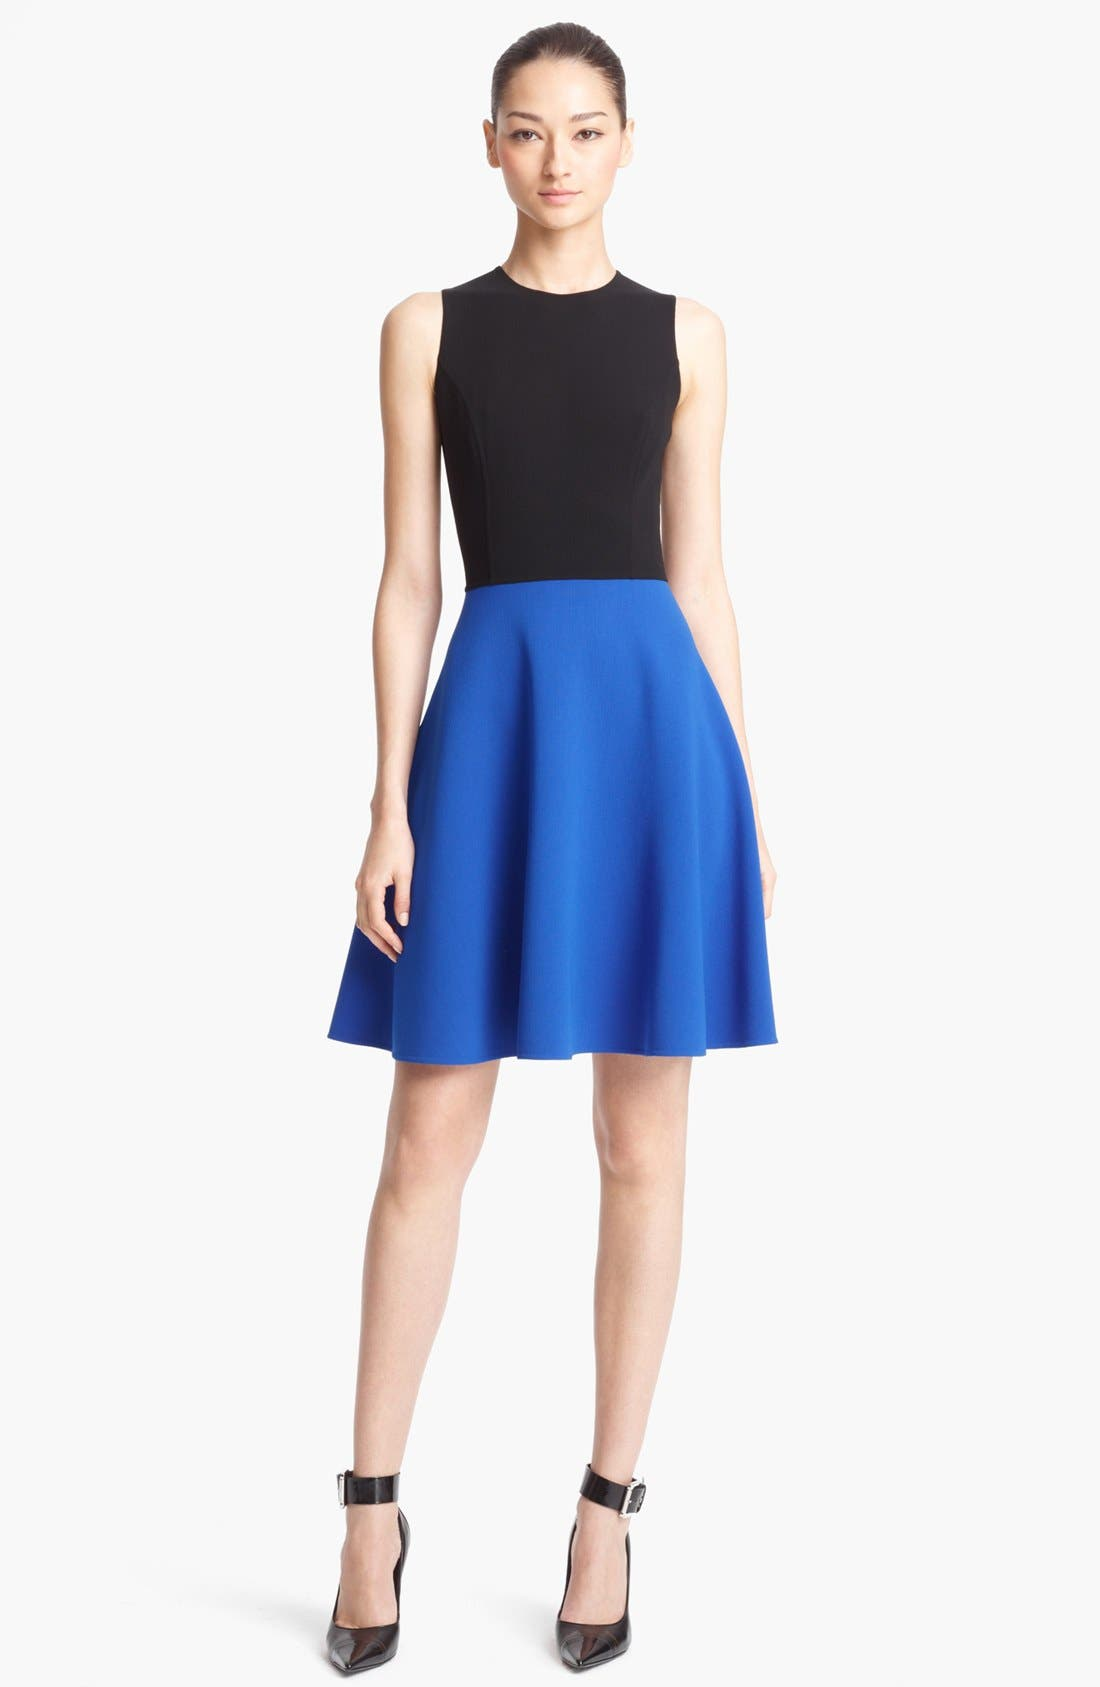 Main Image - Michael Kors Wool Crepe Dress